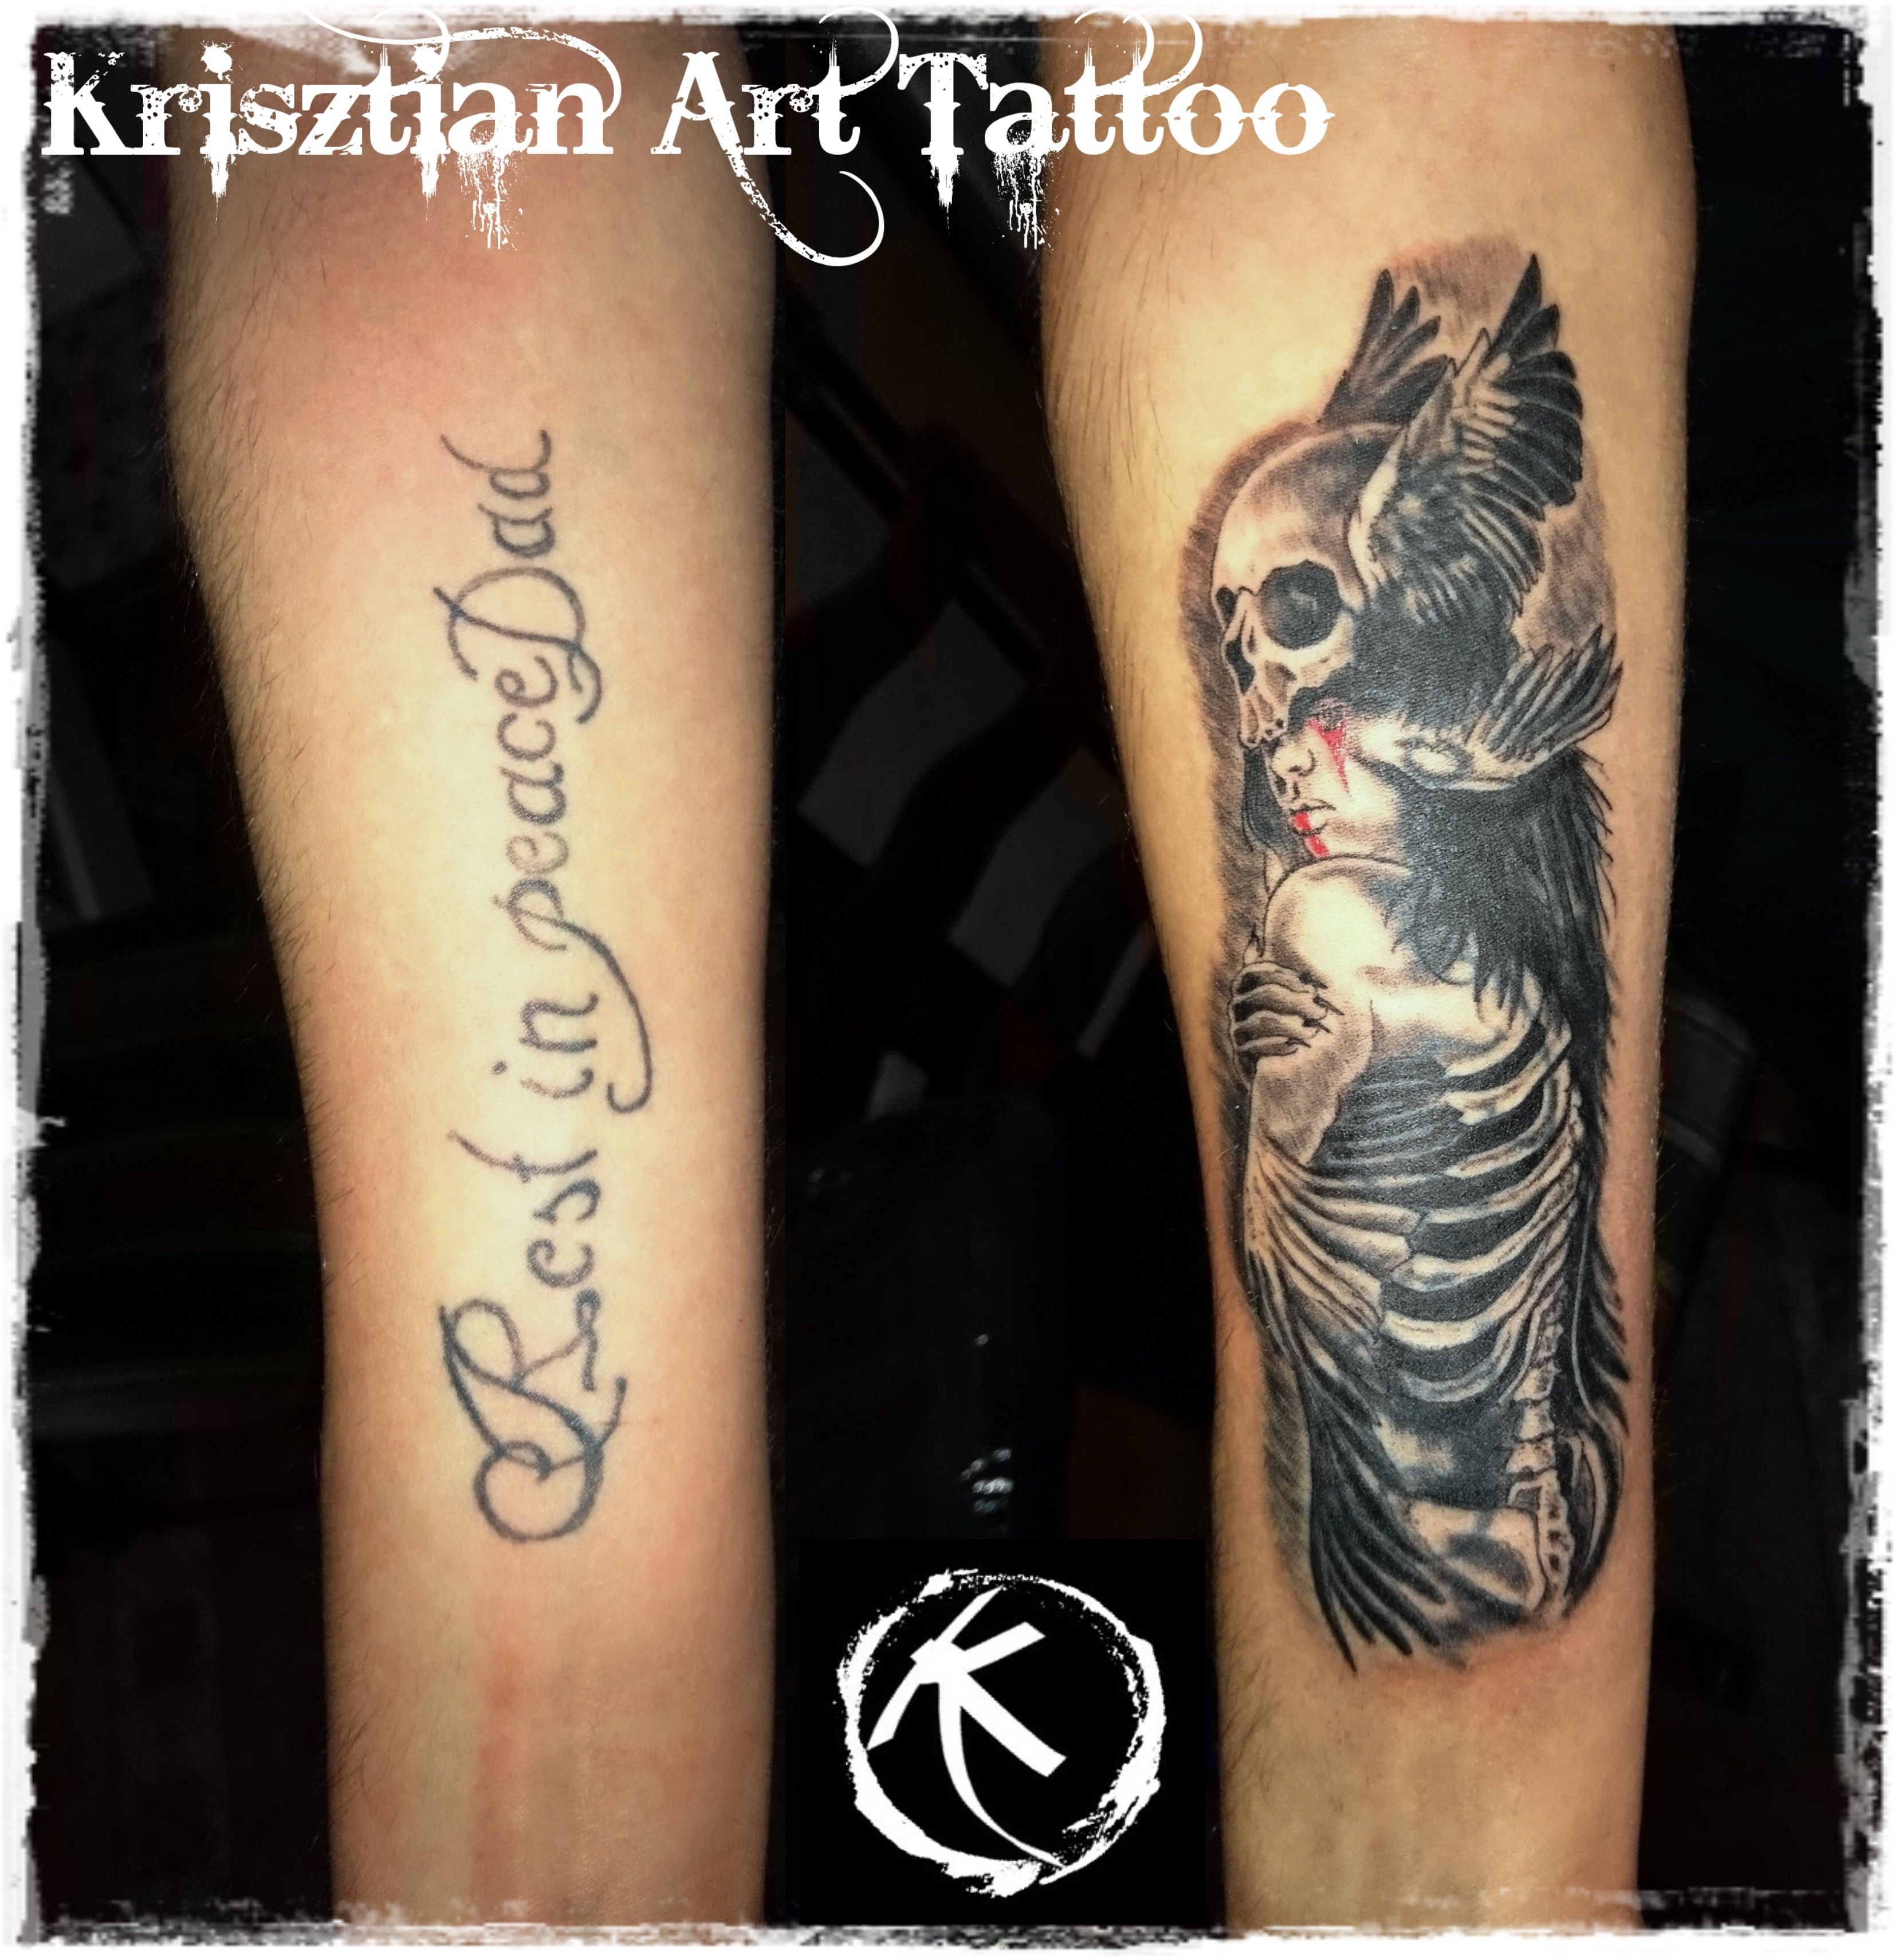 Krisztian Art Tattoo Cover Up Tattoo Forearm Skull And Girl within dimensions 3322 X 3422